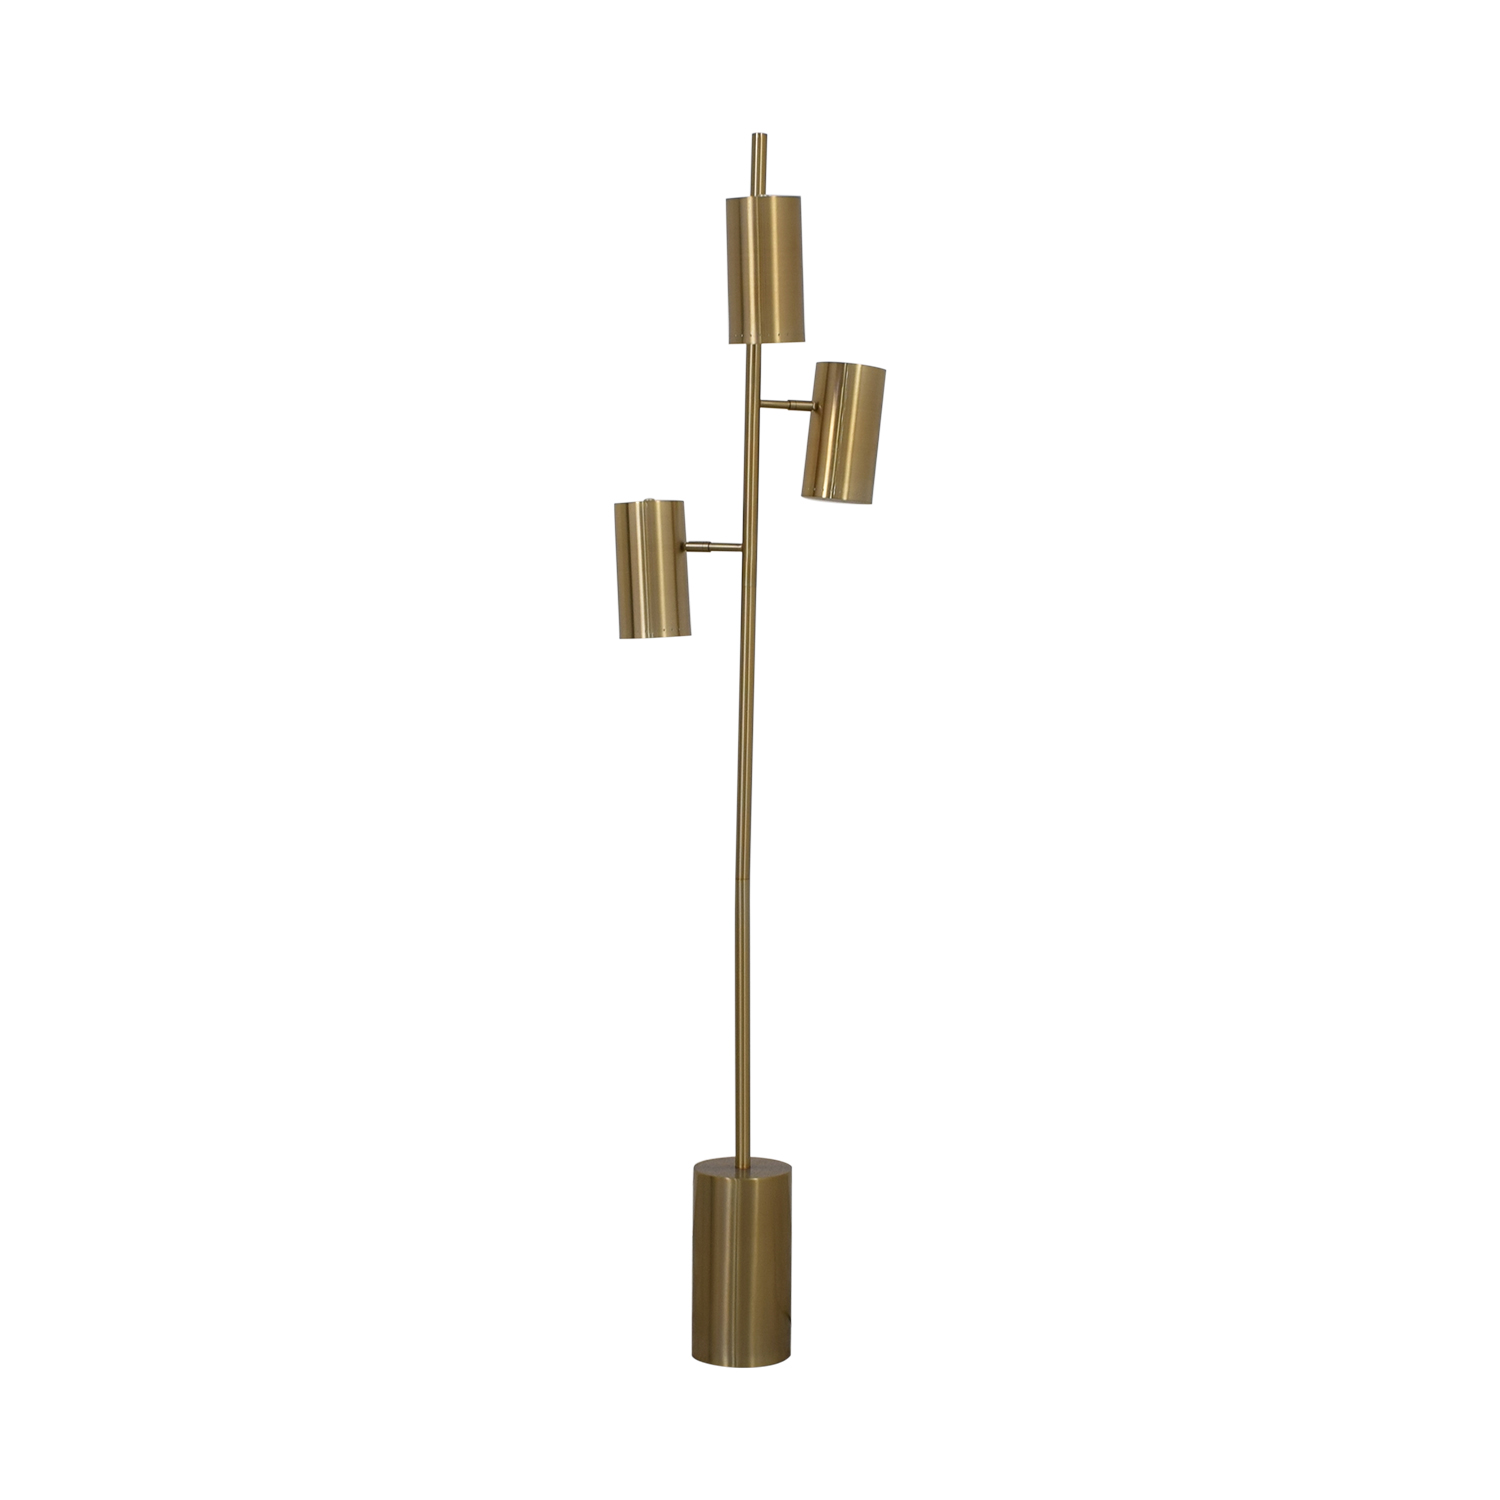 CB2 CB2 Brass Trio Floor Lamp used